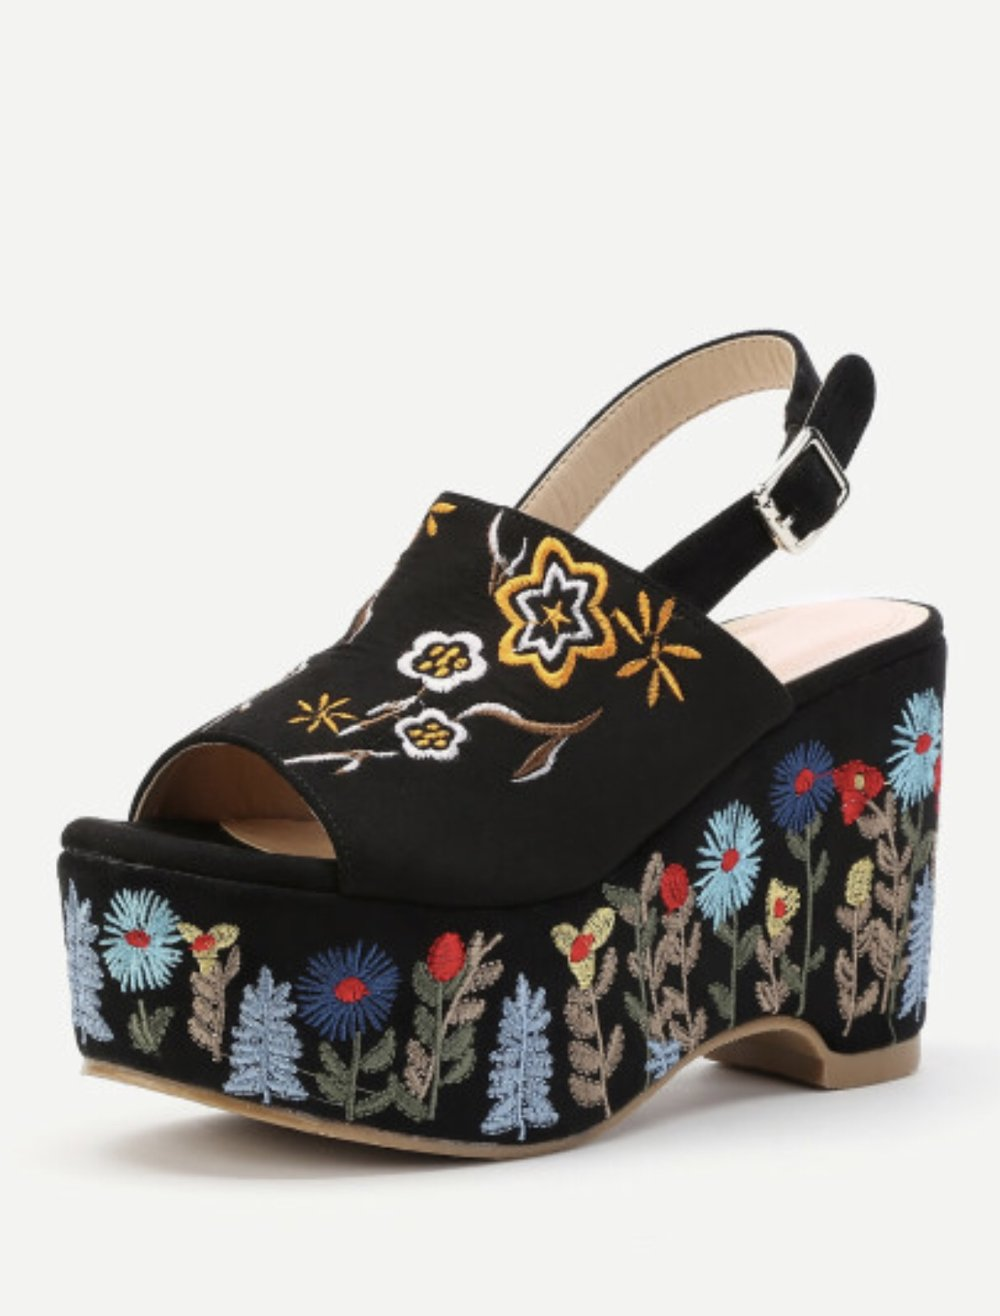 Flower Embroidery Wedge Sandals   Flower Embroidery Denim Wedge Sandals